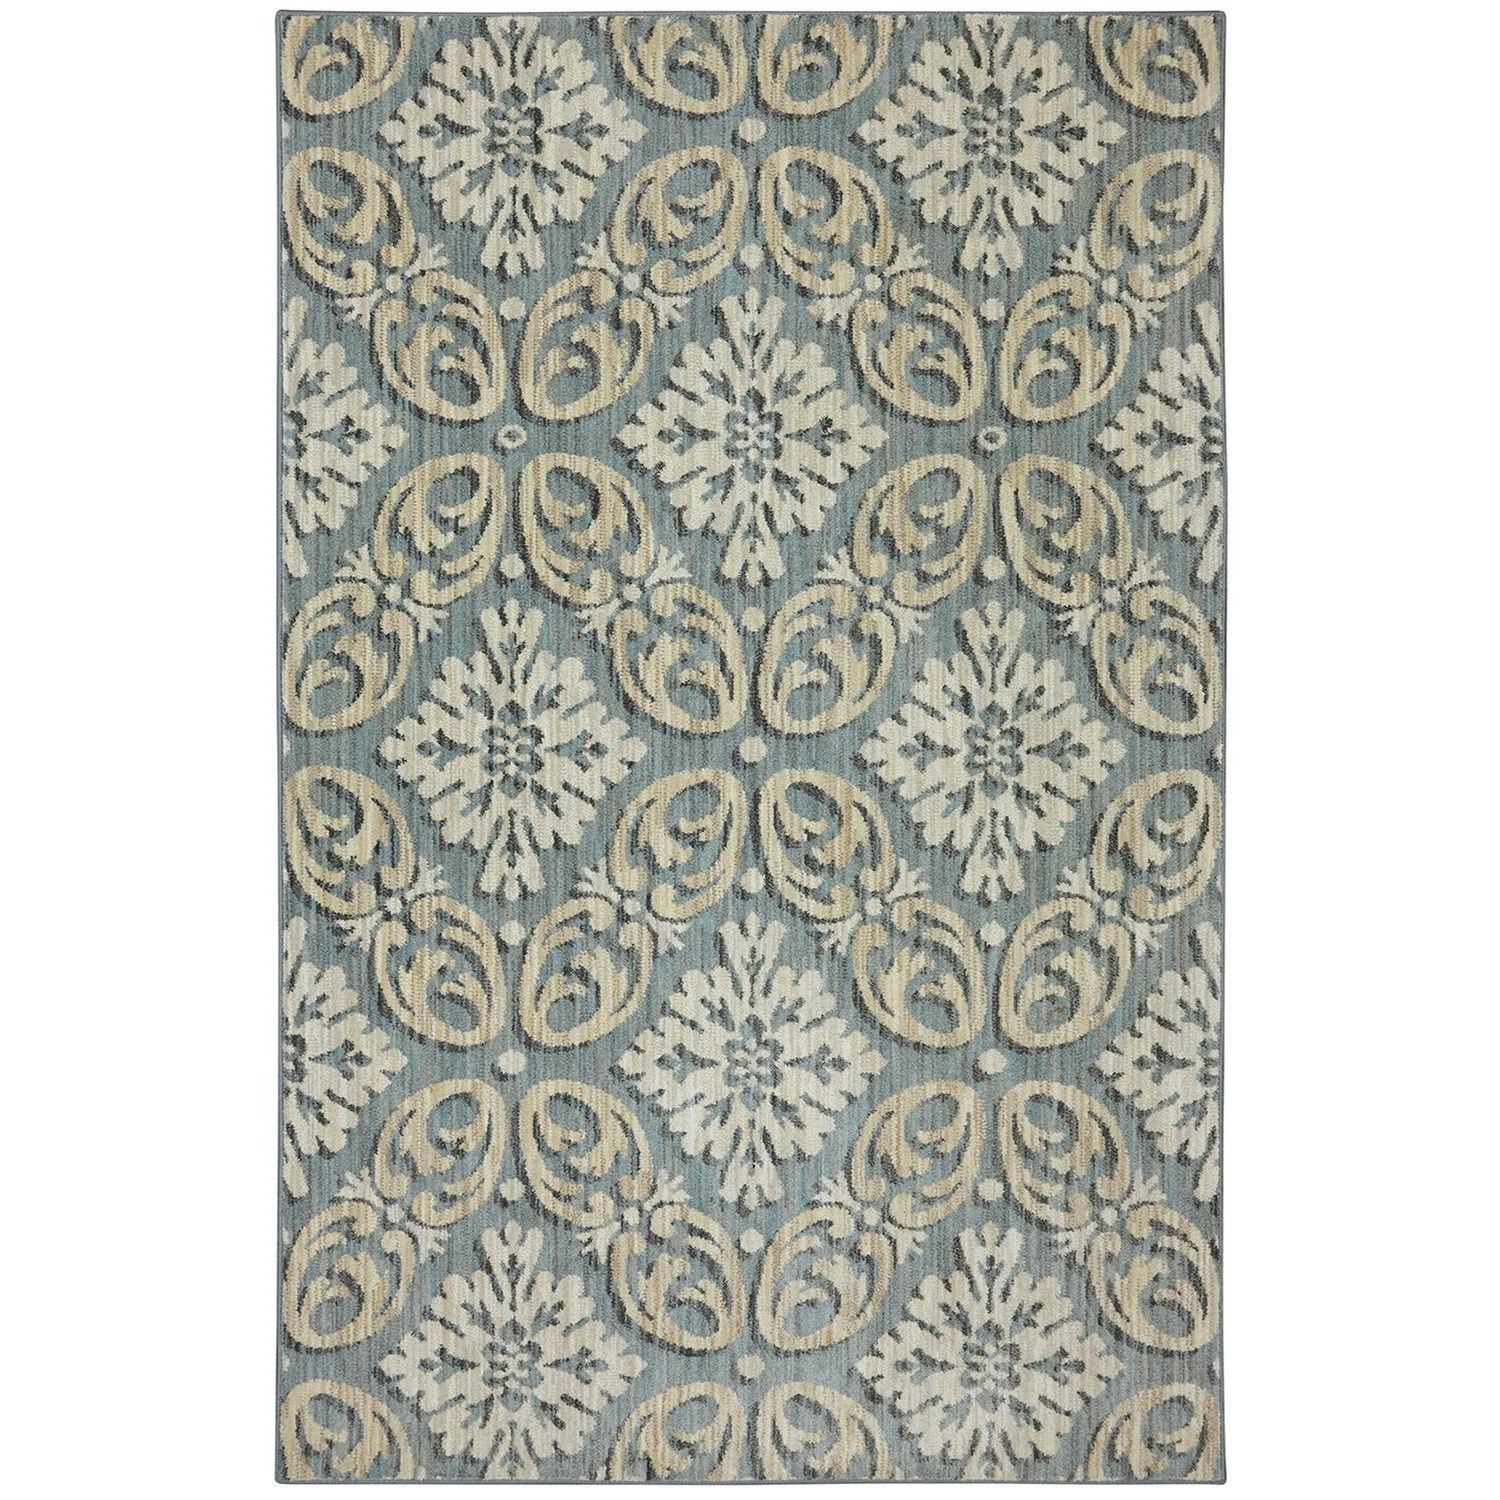 Karastan Rugs Euphoria 5'3x7'10 Findon Bay Blue Rug - Item Number: 90271 55002 063094